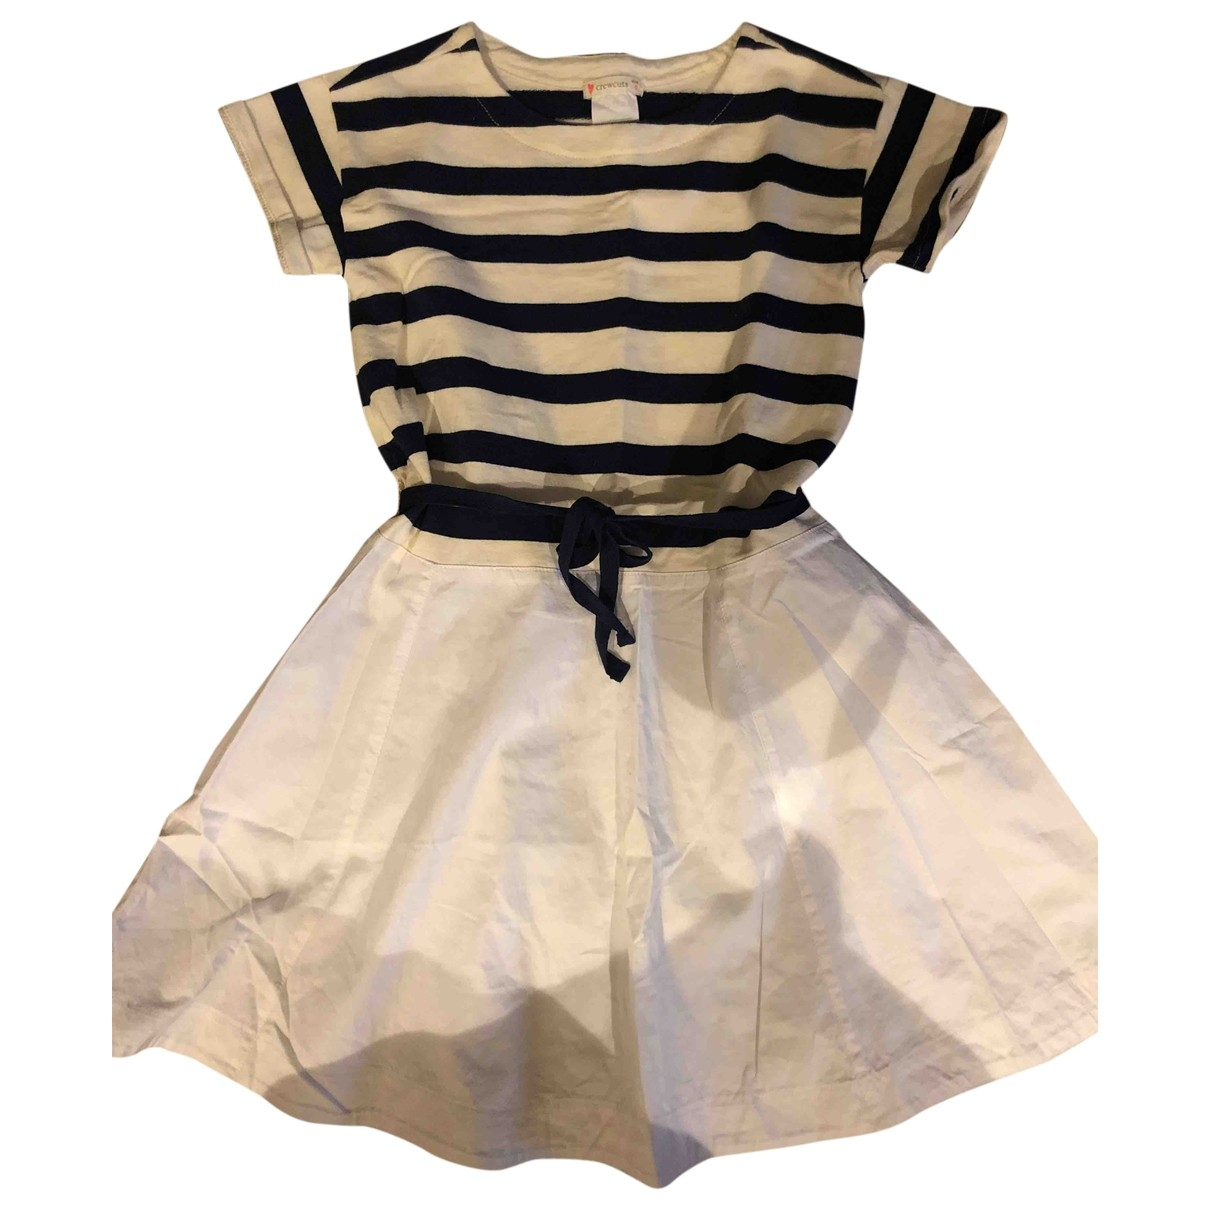 J.crew \N White Cotton dress for Kids 8 years - up to 128cm FR